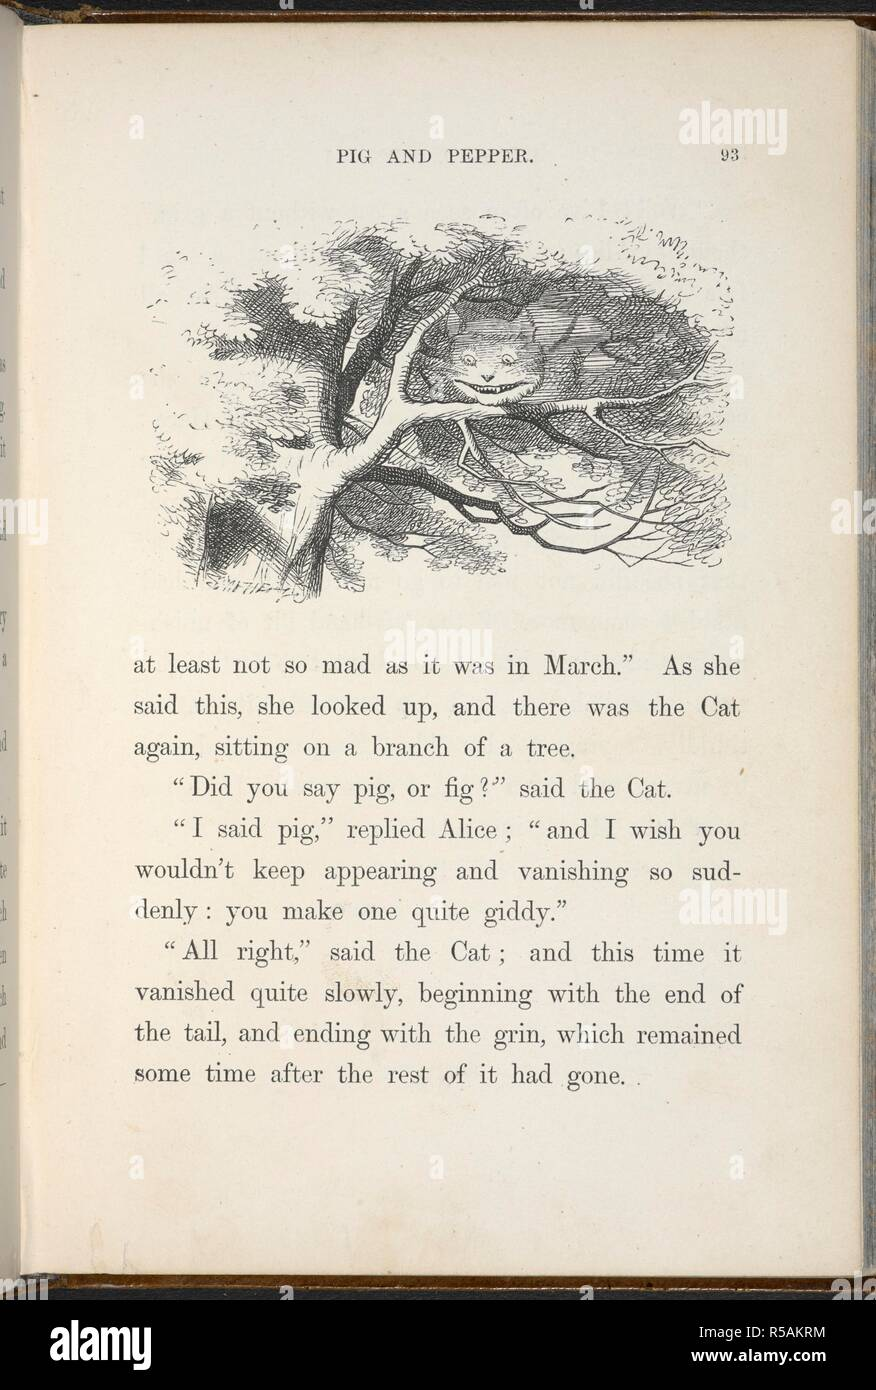 The Cheshire Cat begins to fade away, its his smile the last to go. Alice's Adventures in Wonderland. With forty-two illustrations by John Tenniel. London : Macmillan & Co., 1866 [1865]. Source: C.59.g.11, page 93. - Stock Image